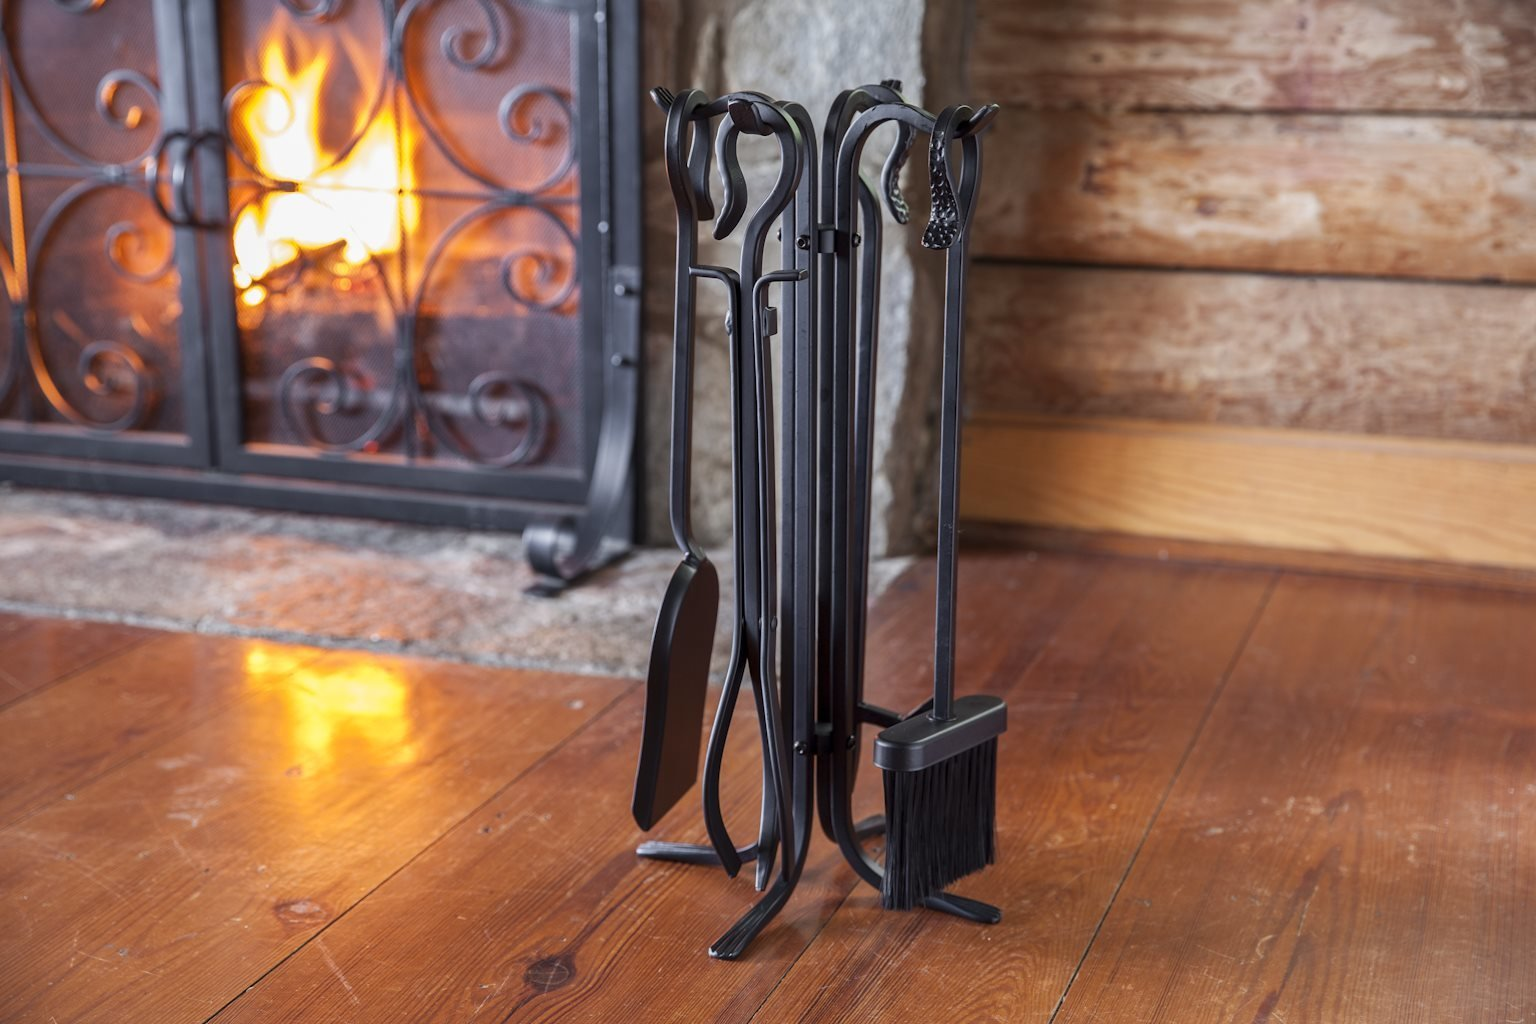 Plow & Hearth 5 Piece Hand Forged Iron Compact Fireplace Tool Set Poker Tongs Shovel Broom and Stand Shepherd's Hook Style Wood Stove Firepit Accessories Natural Black Finish 10.25 sq. x 20 H by Plow & Hearth